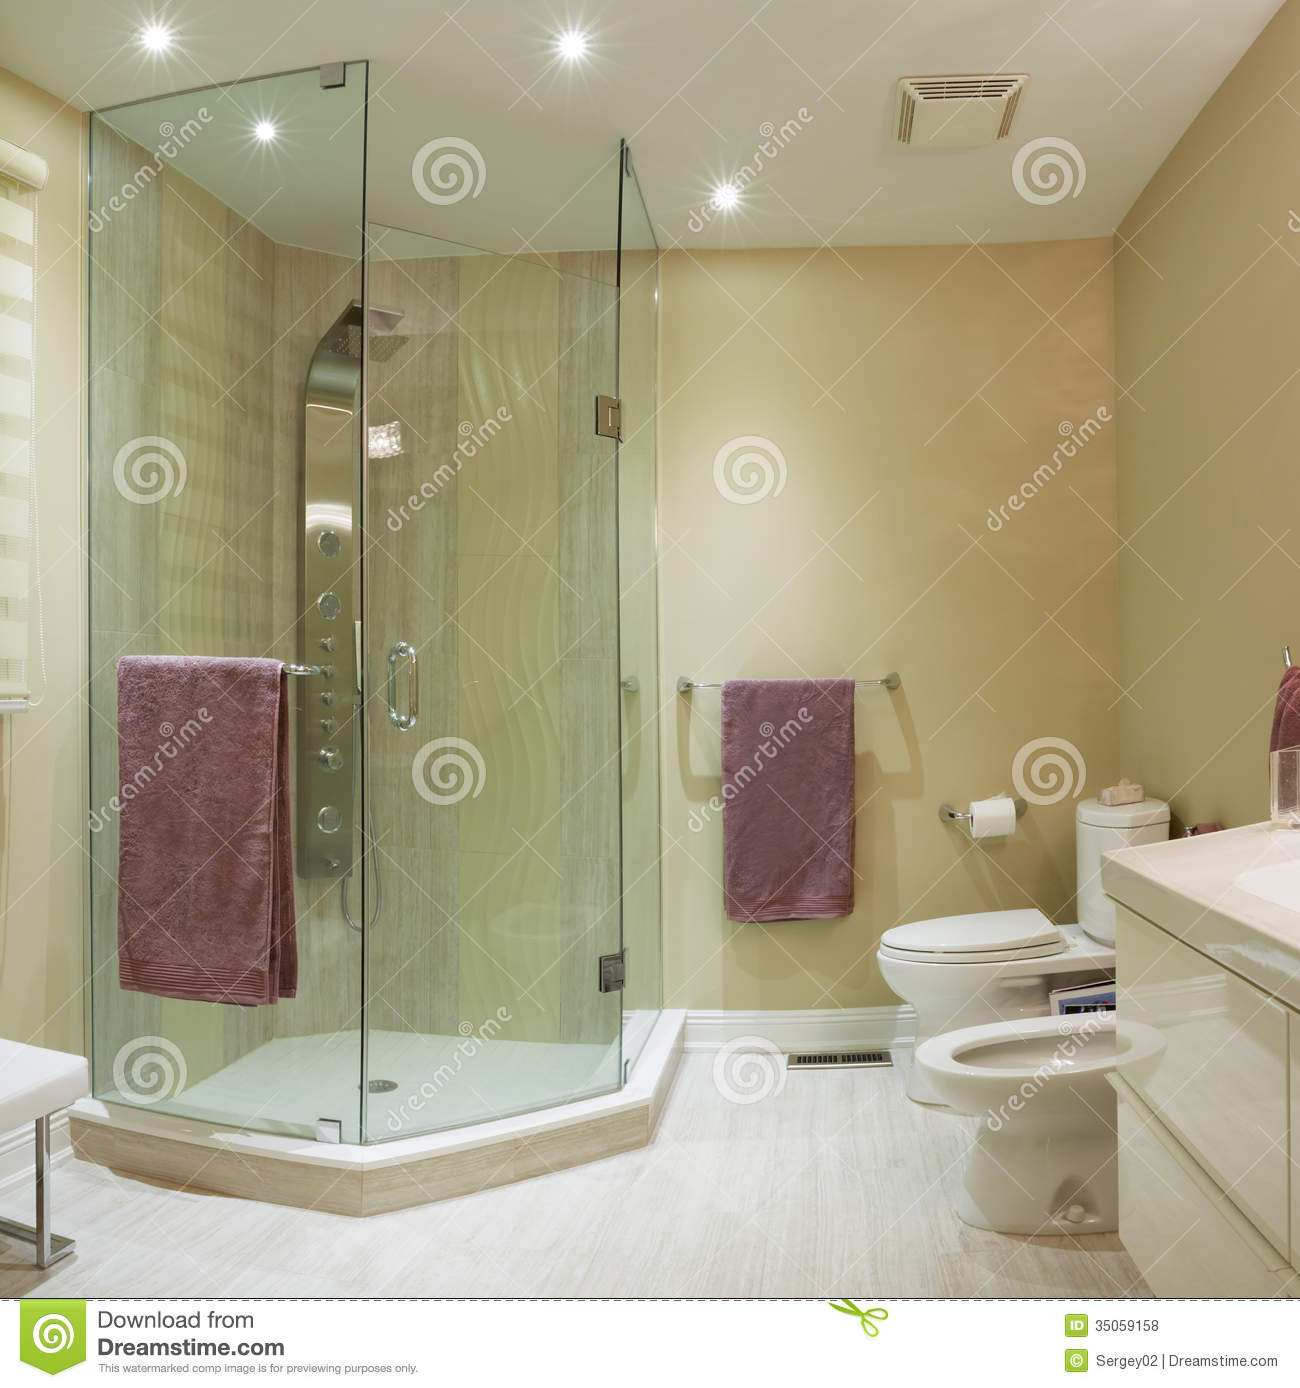 Interior design royalty free stock photos image 35059158 for Bathroom designs for home